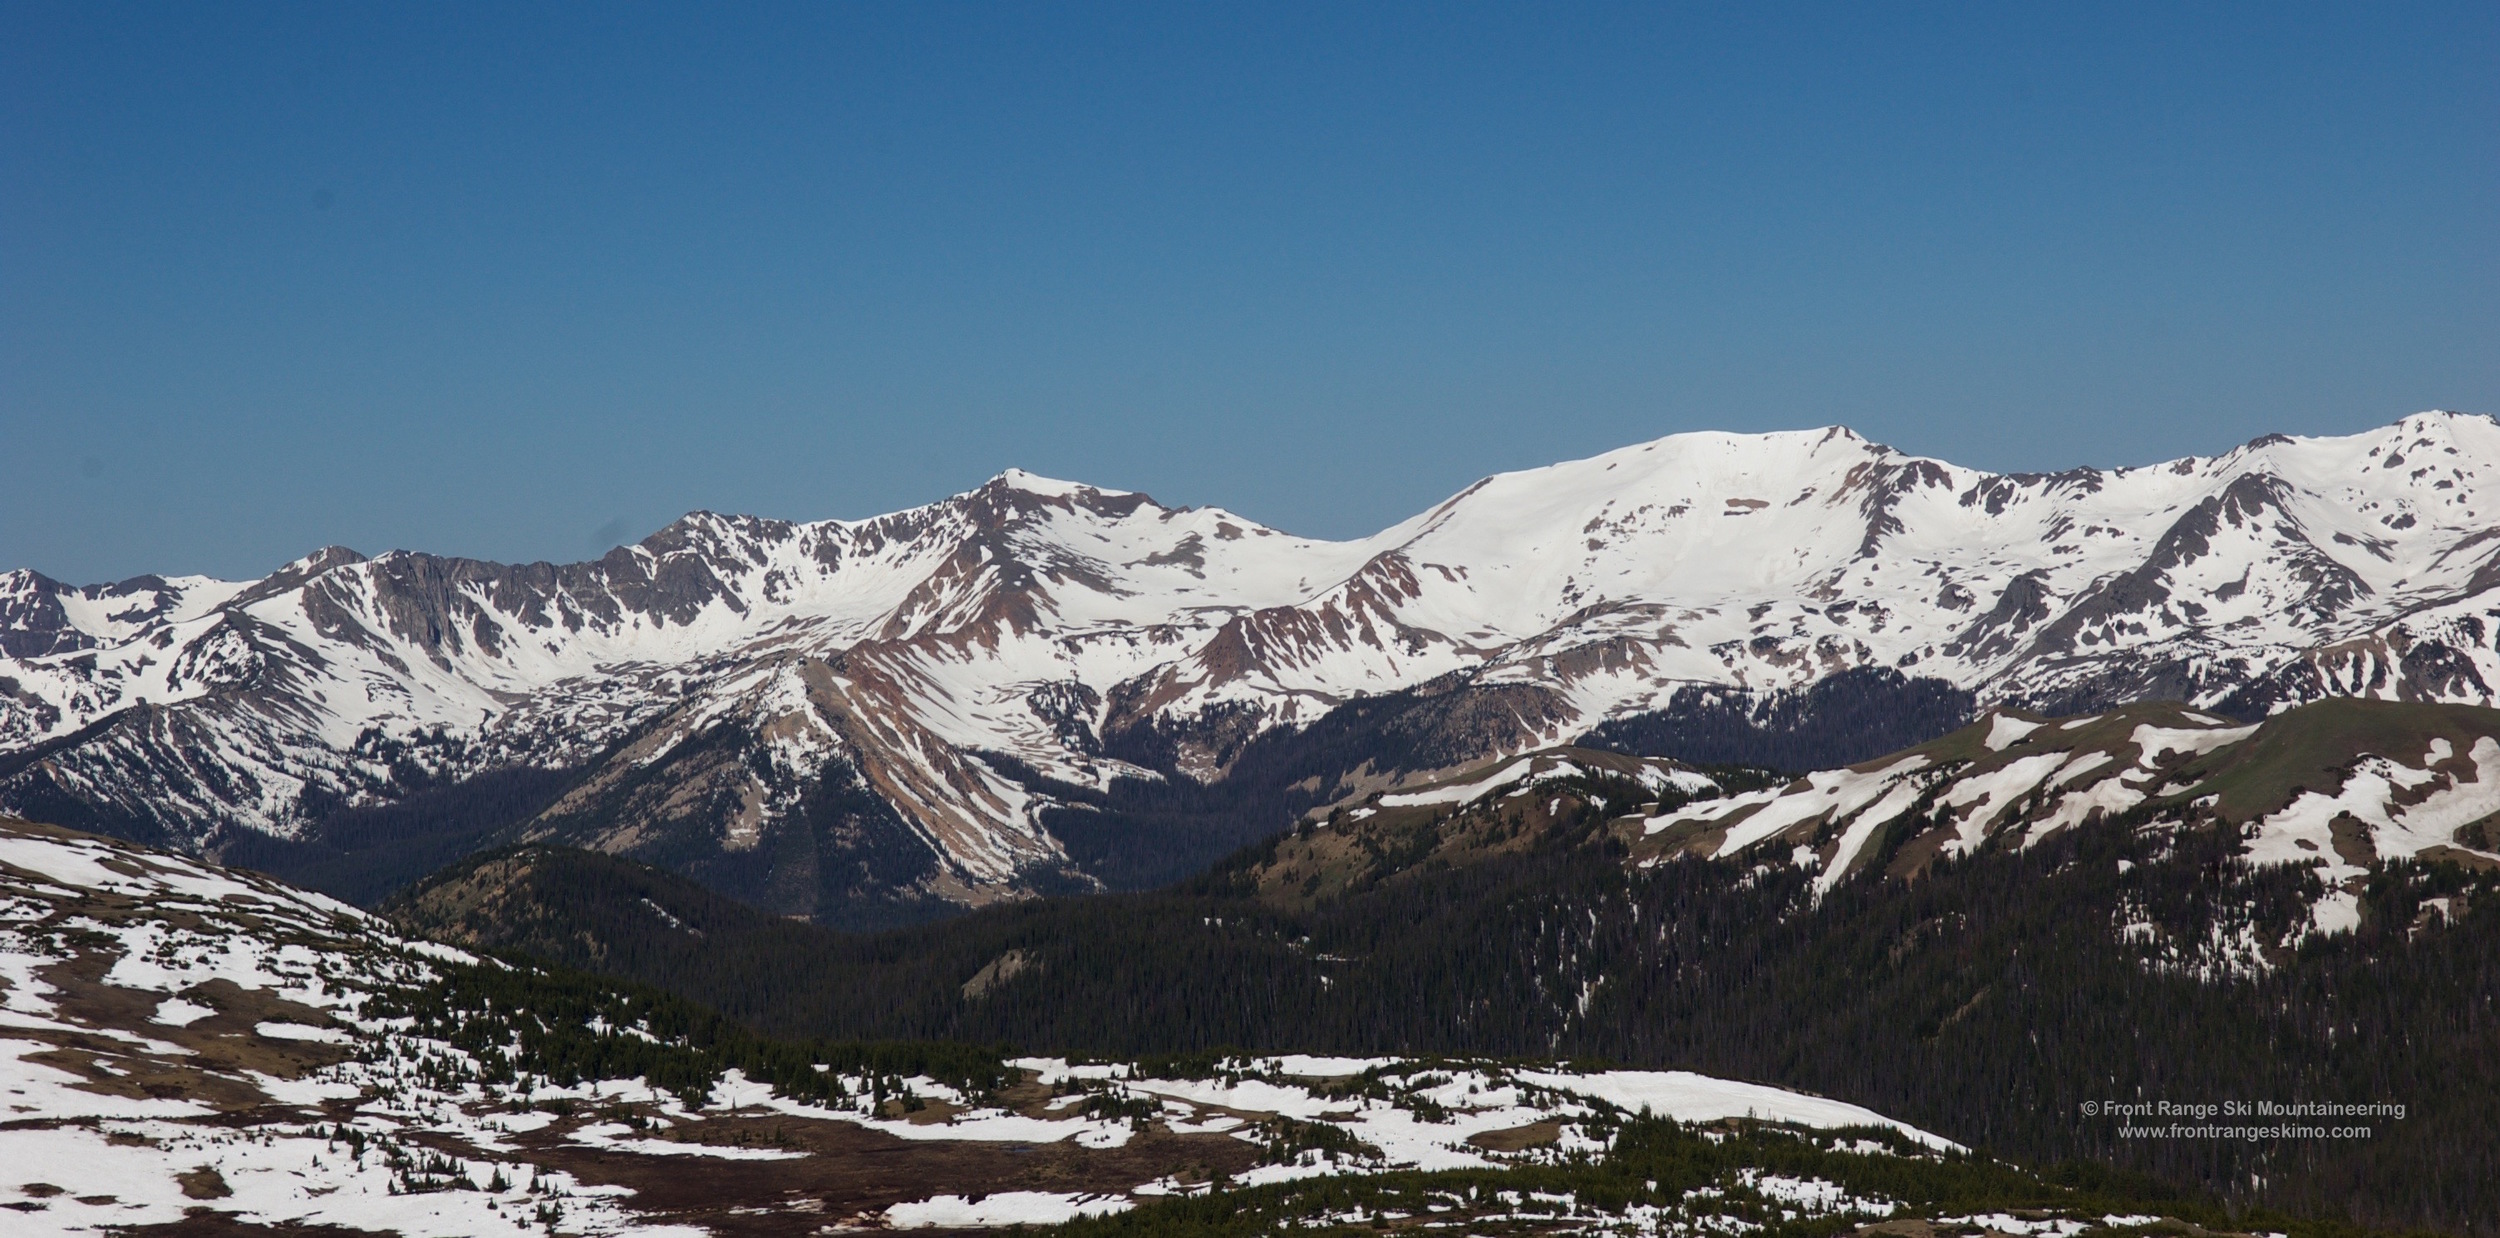 Mount Cumulus, Mount Nimbus, and Mount Stratus as seen from Trail Ridge Road.